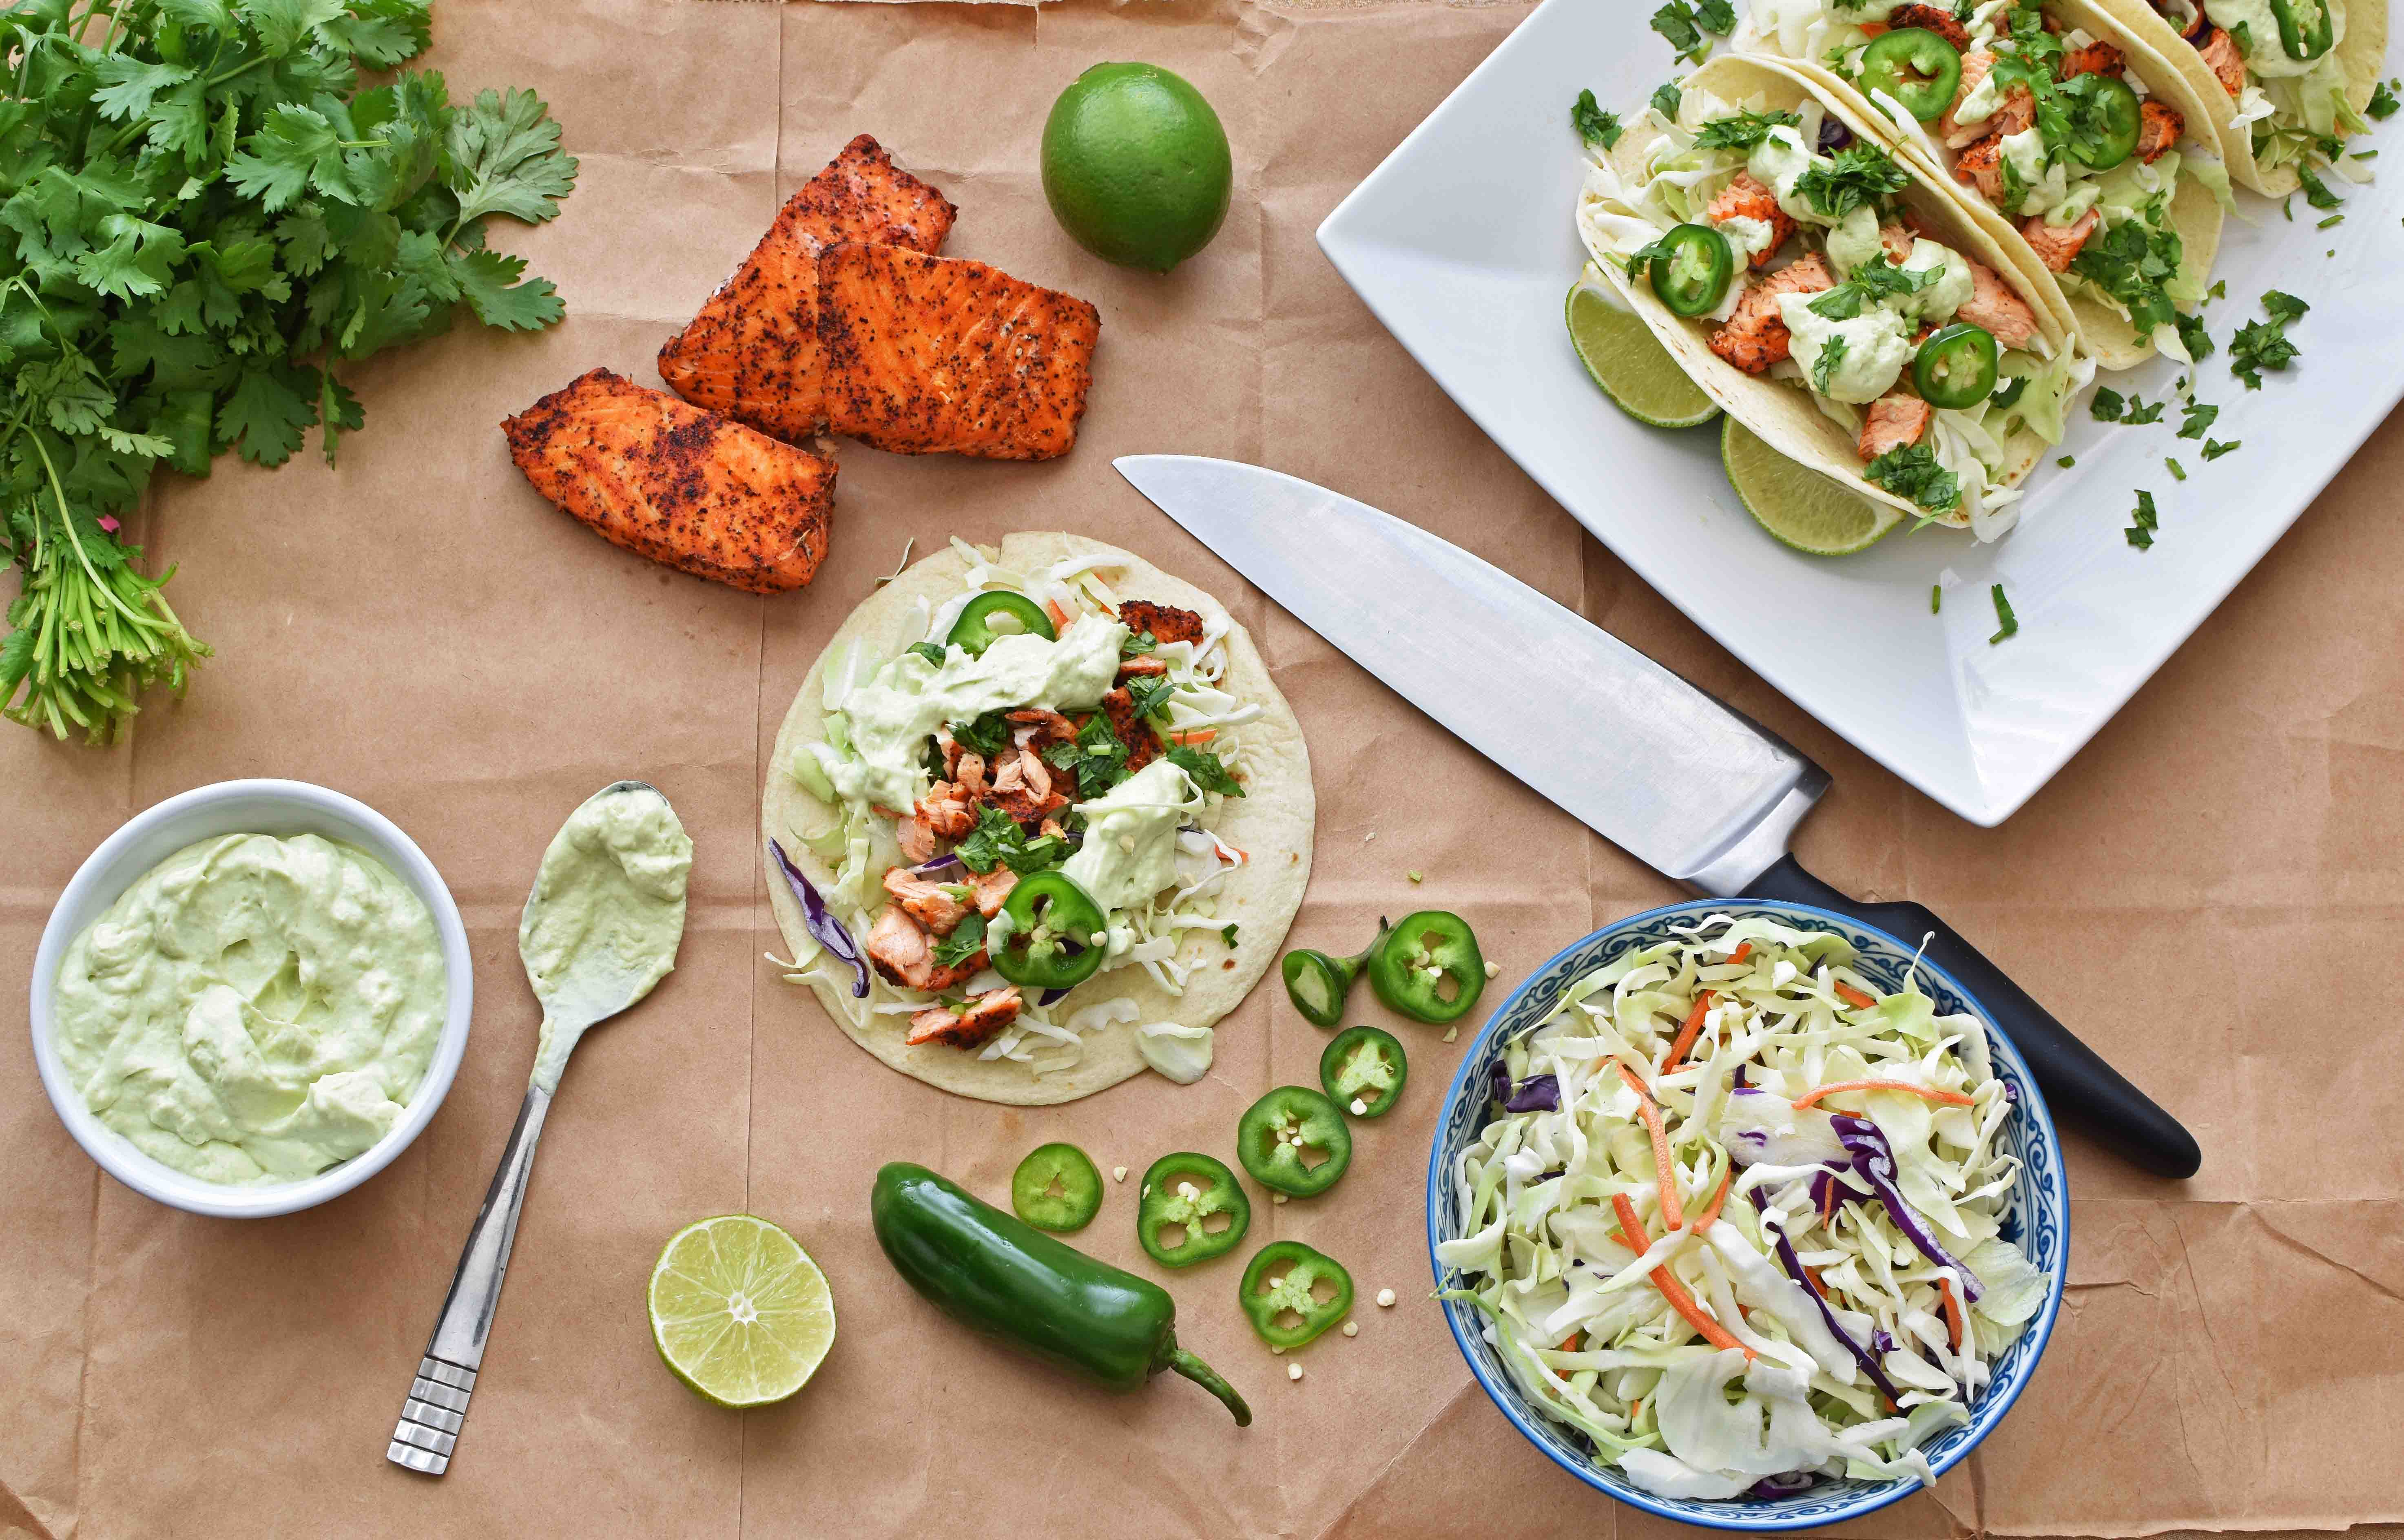 Salmon Taco with Avocado Crema - Pepper Delight #pepperdelightblog #recipe #taco #salmon #fishtaco #tacotuesday #30minuterecipe #avocado